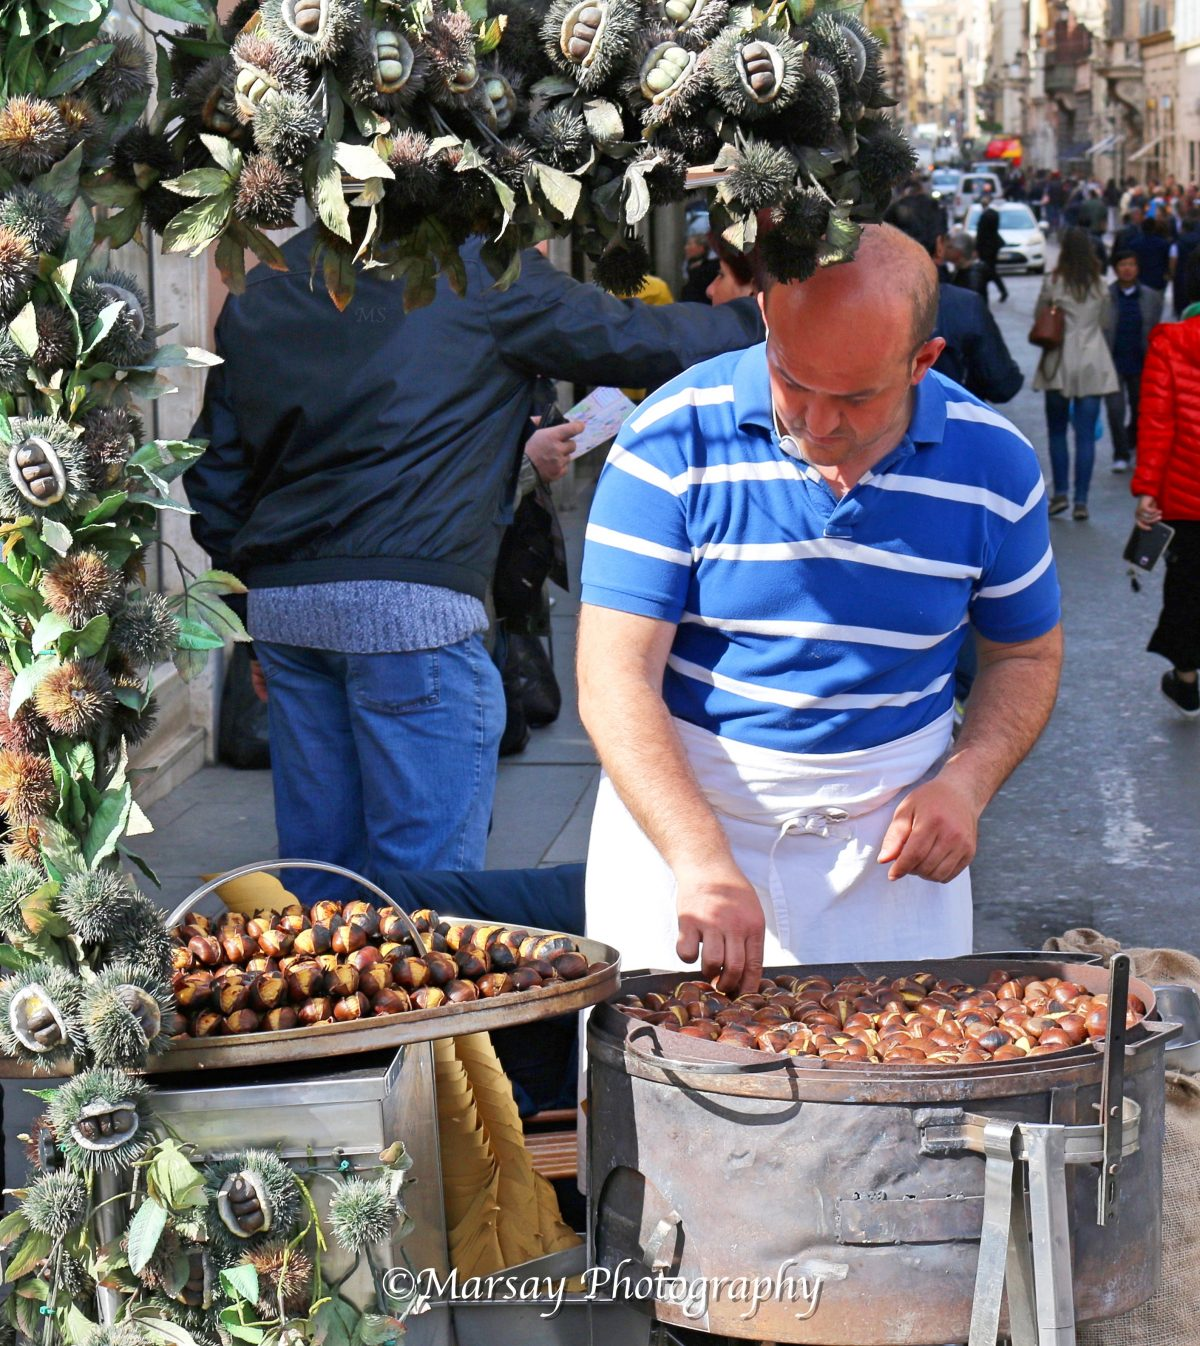 Grab a Snack of Roasted Chestnuts as you carry on exploring more of Rome.